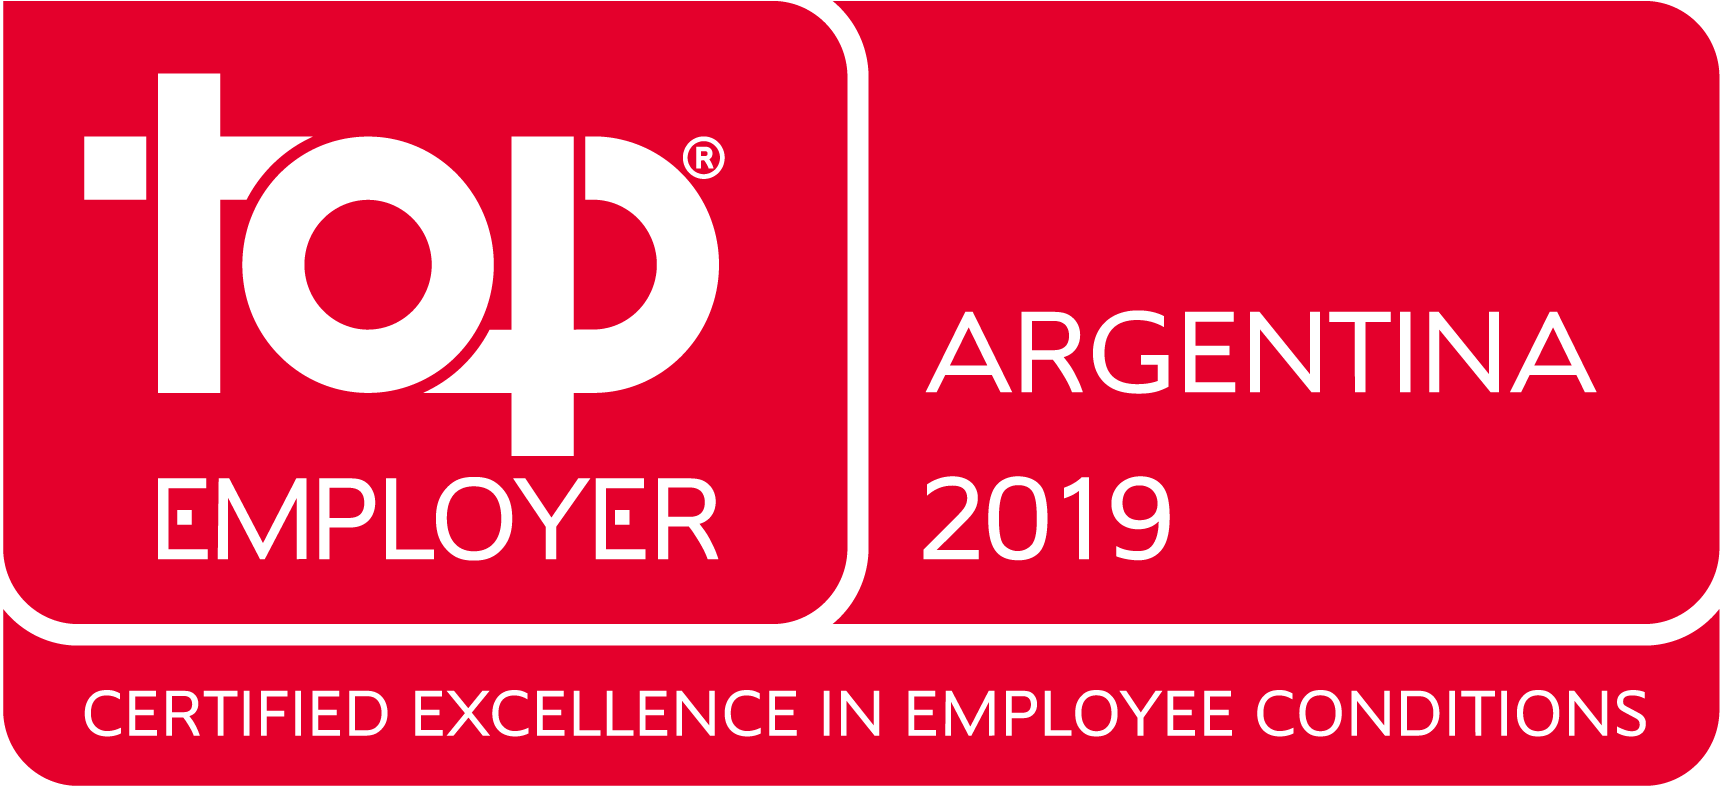 Top_Employer_Argentina_2019